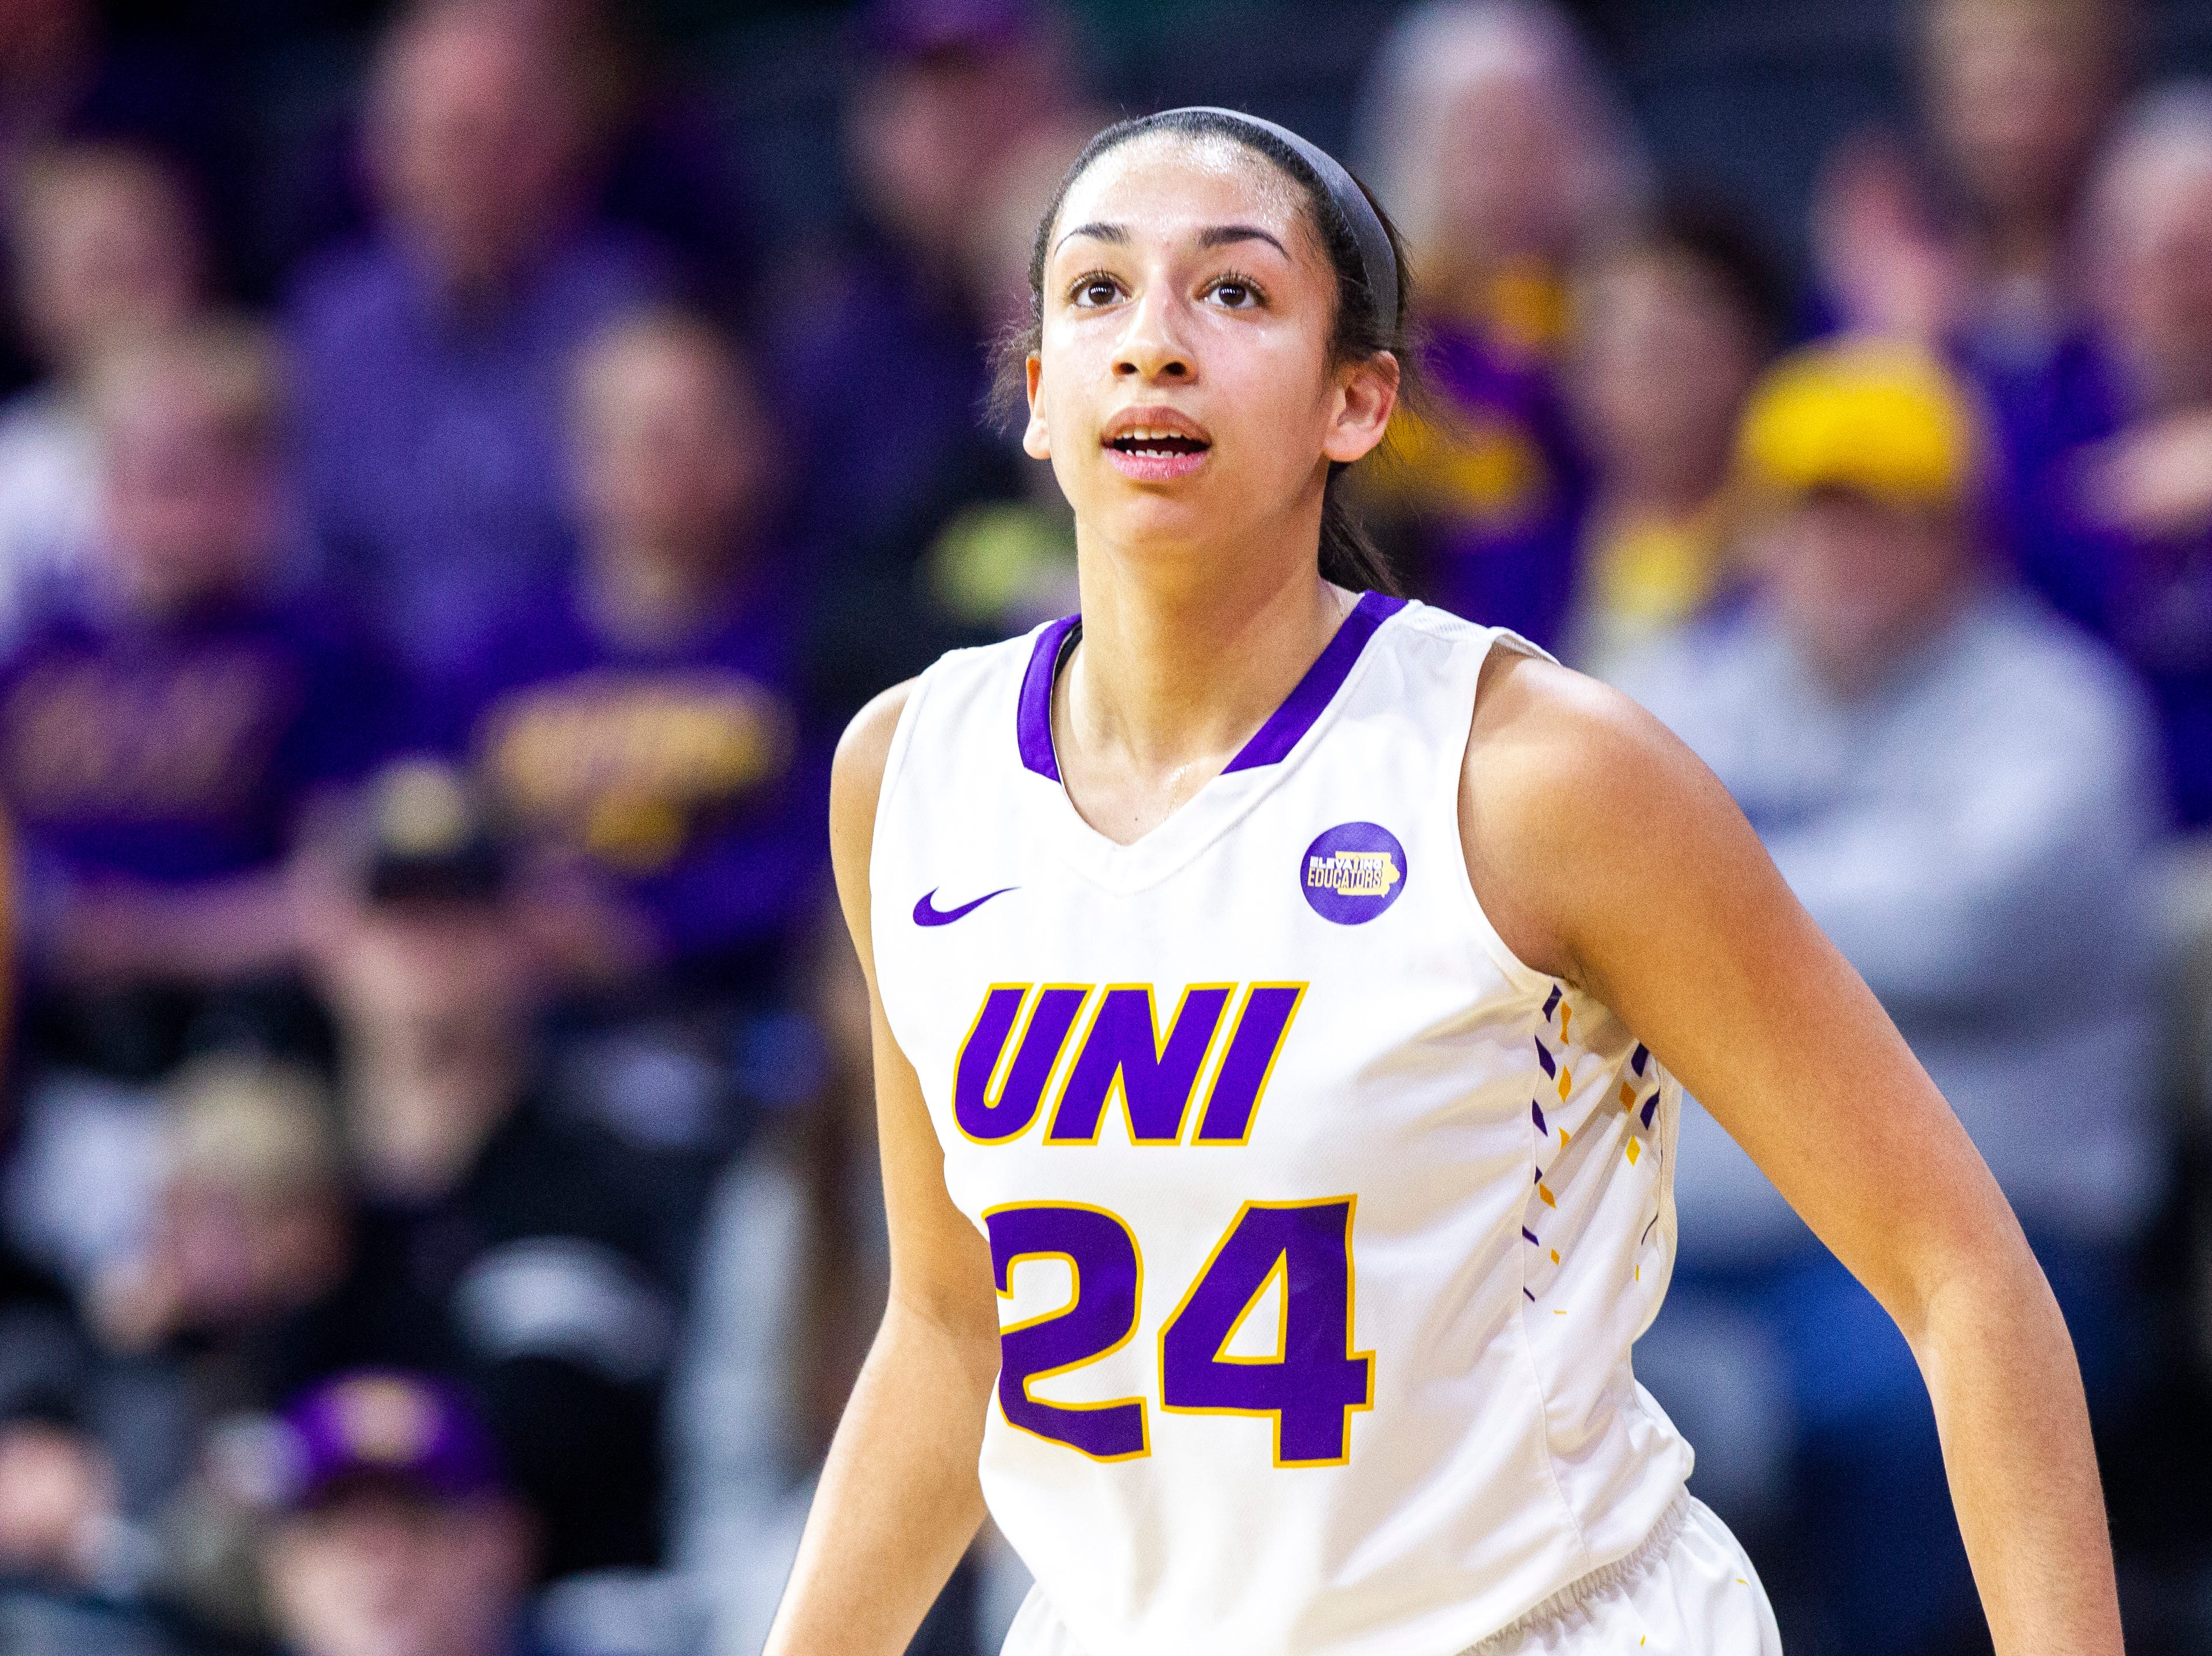 Northern Iowa guard Mikaela Morgan (24) runs up court during a NCAA Missouri Valley Conference women's basketball quarterfinal tournament game, Friday, March 15, 2019, at the TaxSlayer Center in Moline, Illinois.